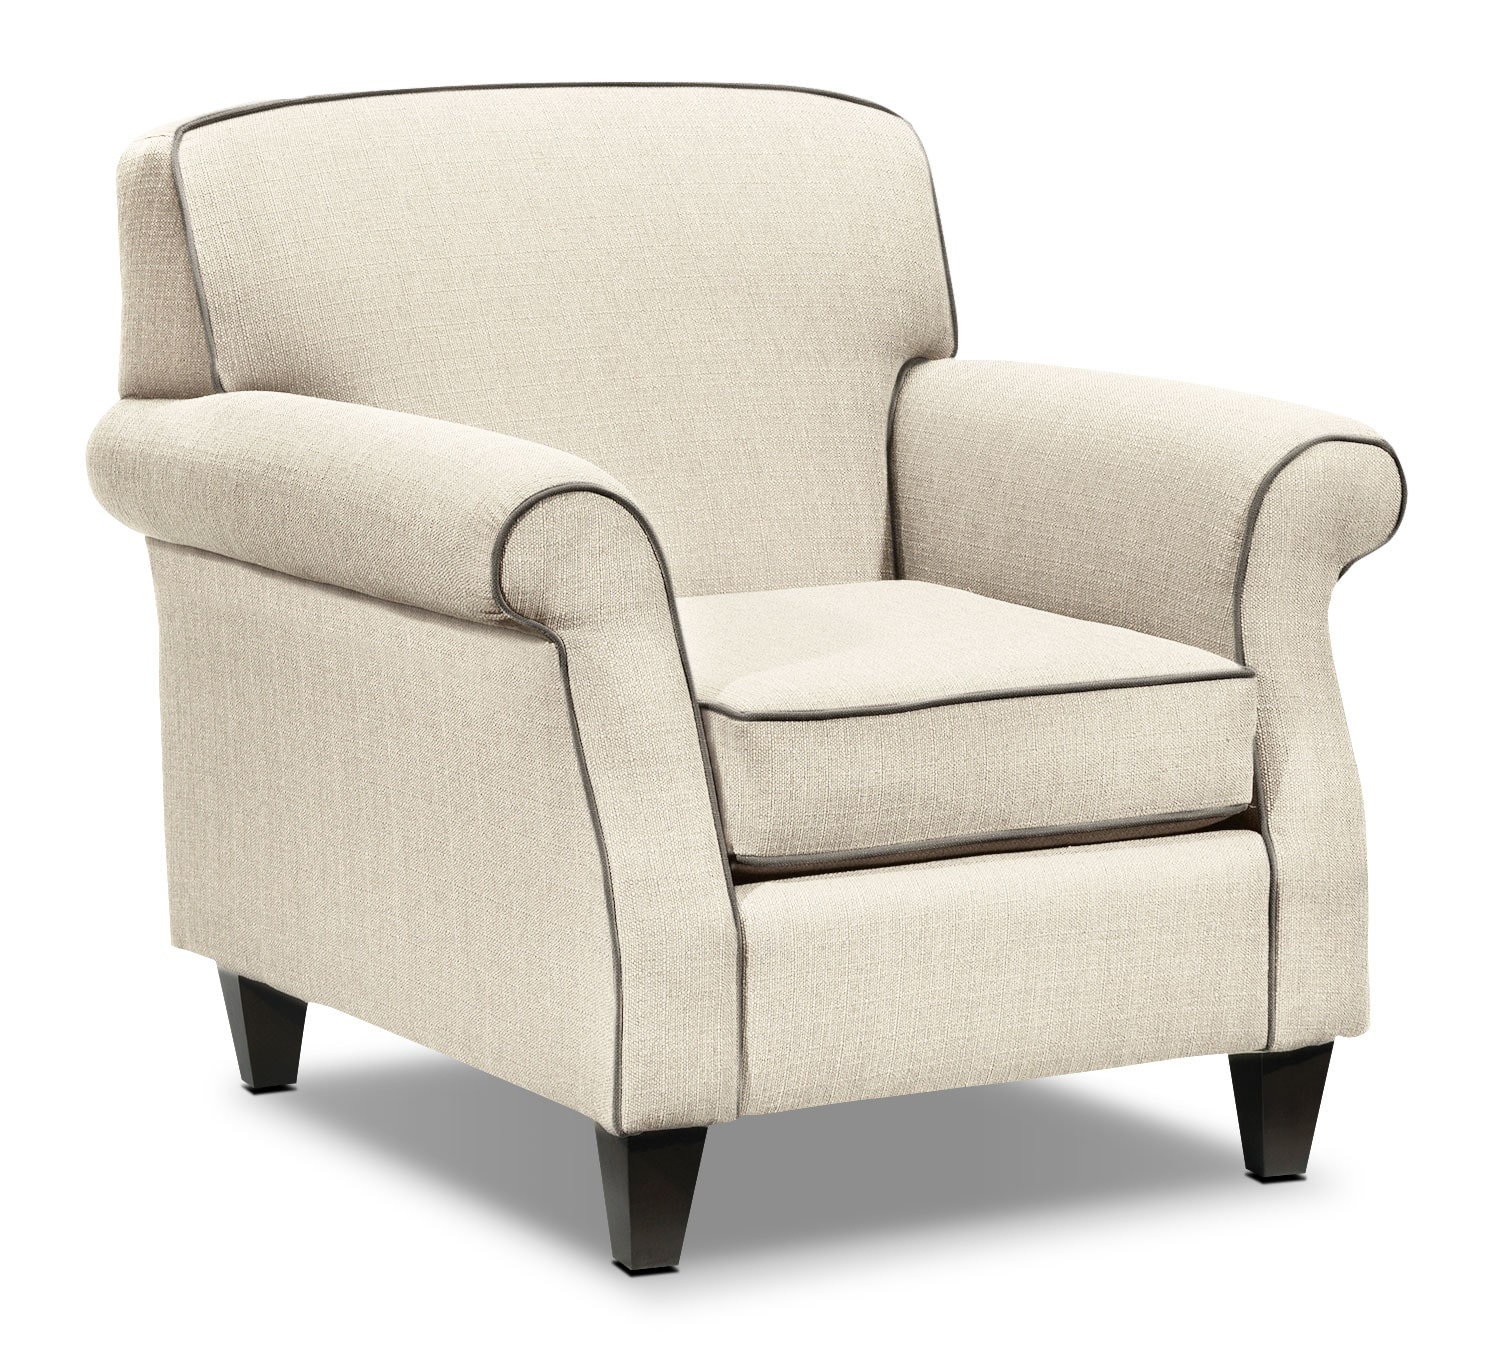 Aristo Chair - Ivory